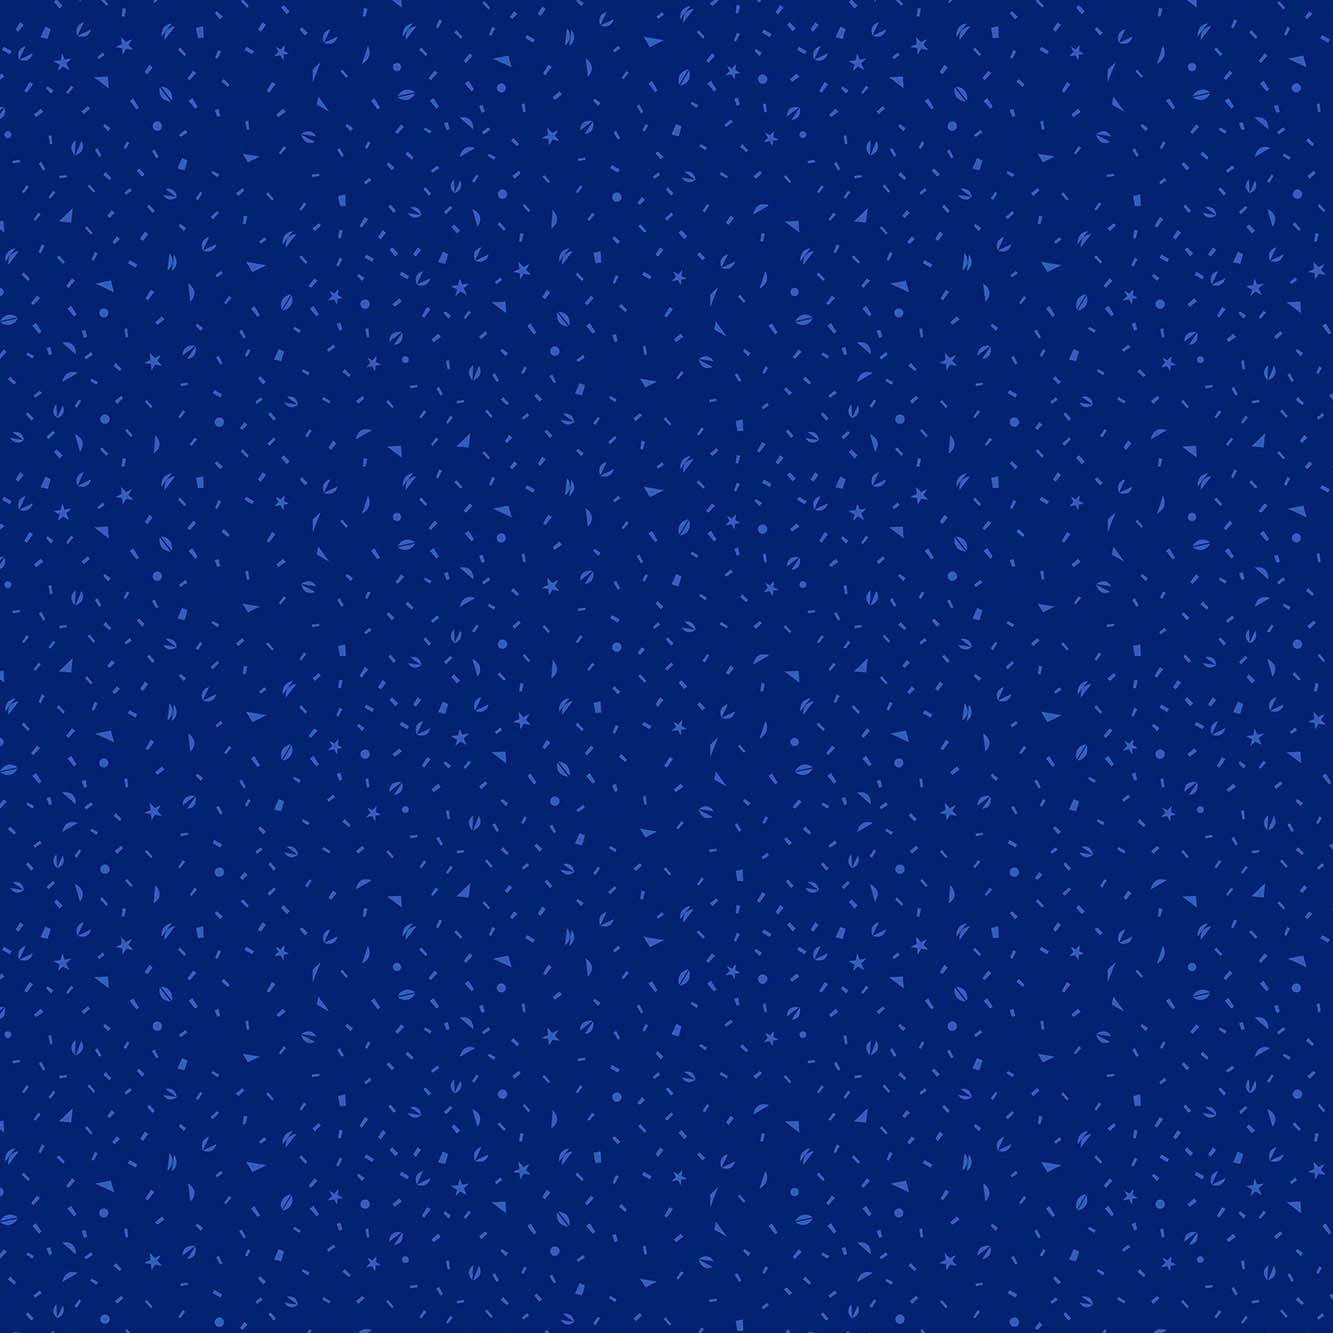 Confetti Navy from the Tropical Jammin' collection by Figo Fabrics, 100% cotton fabric